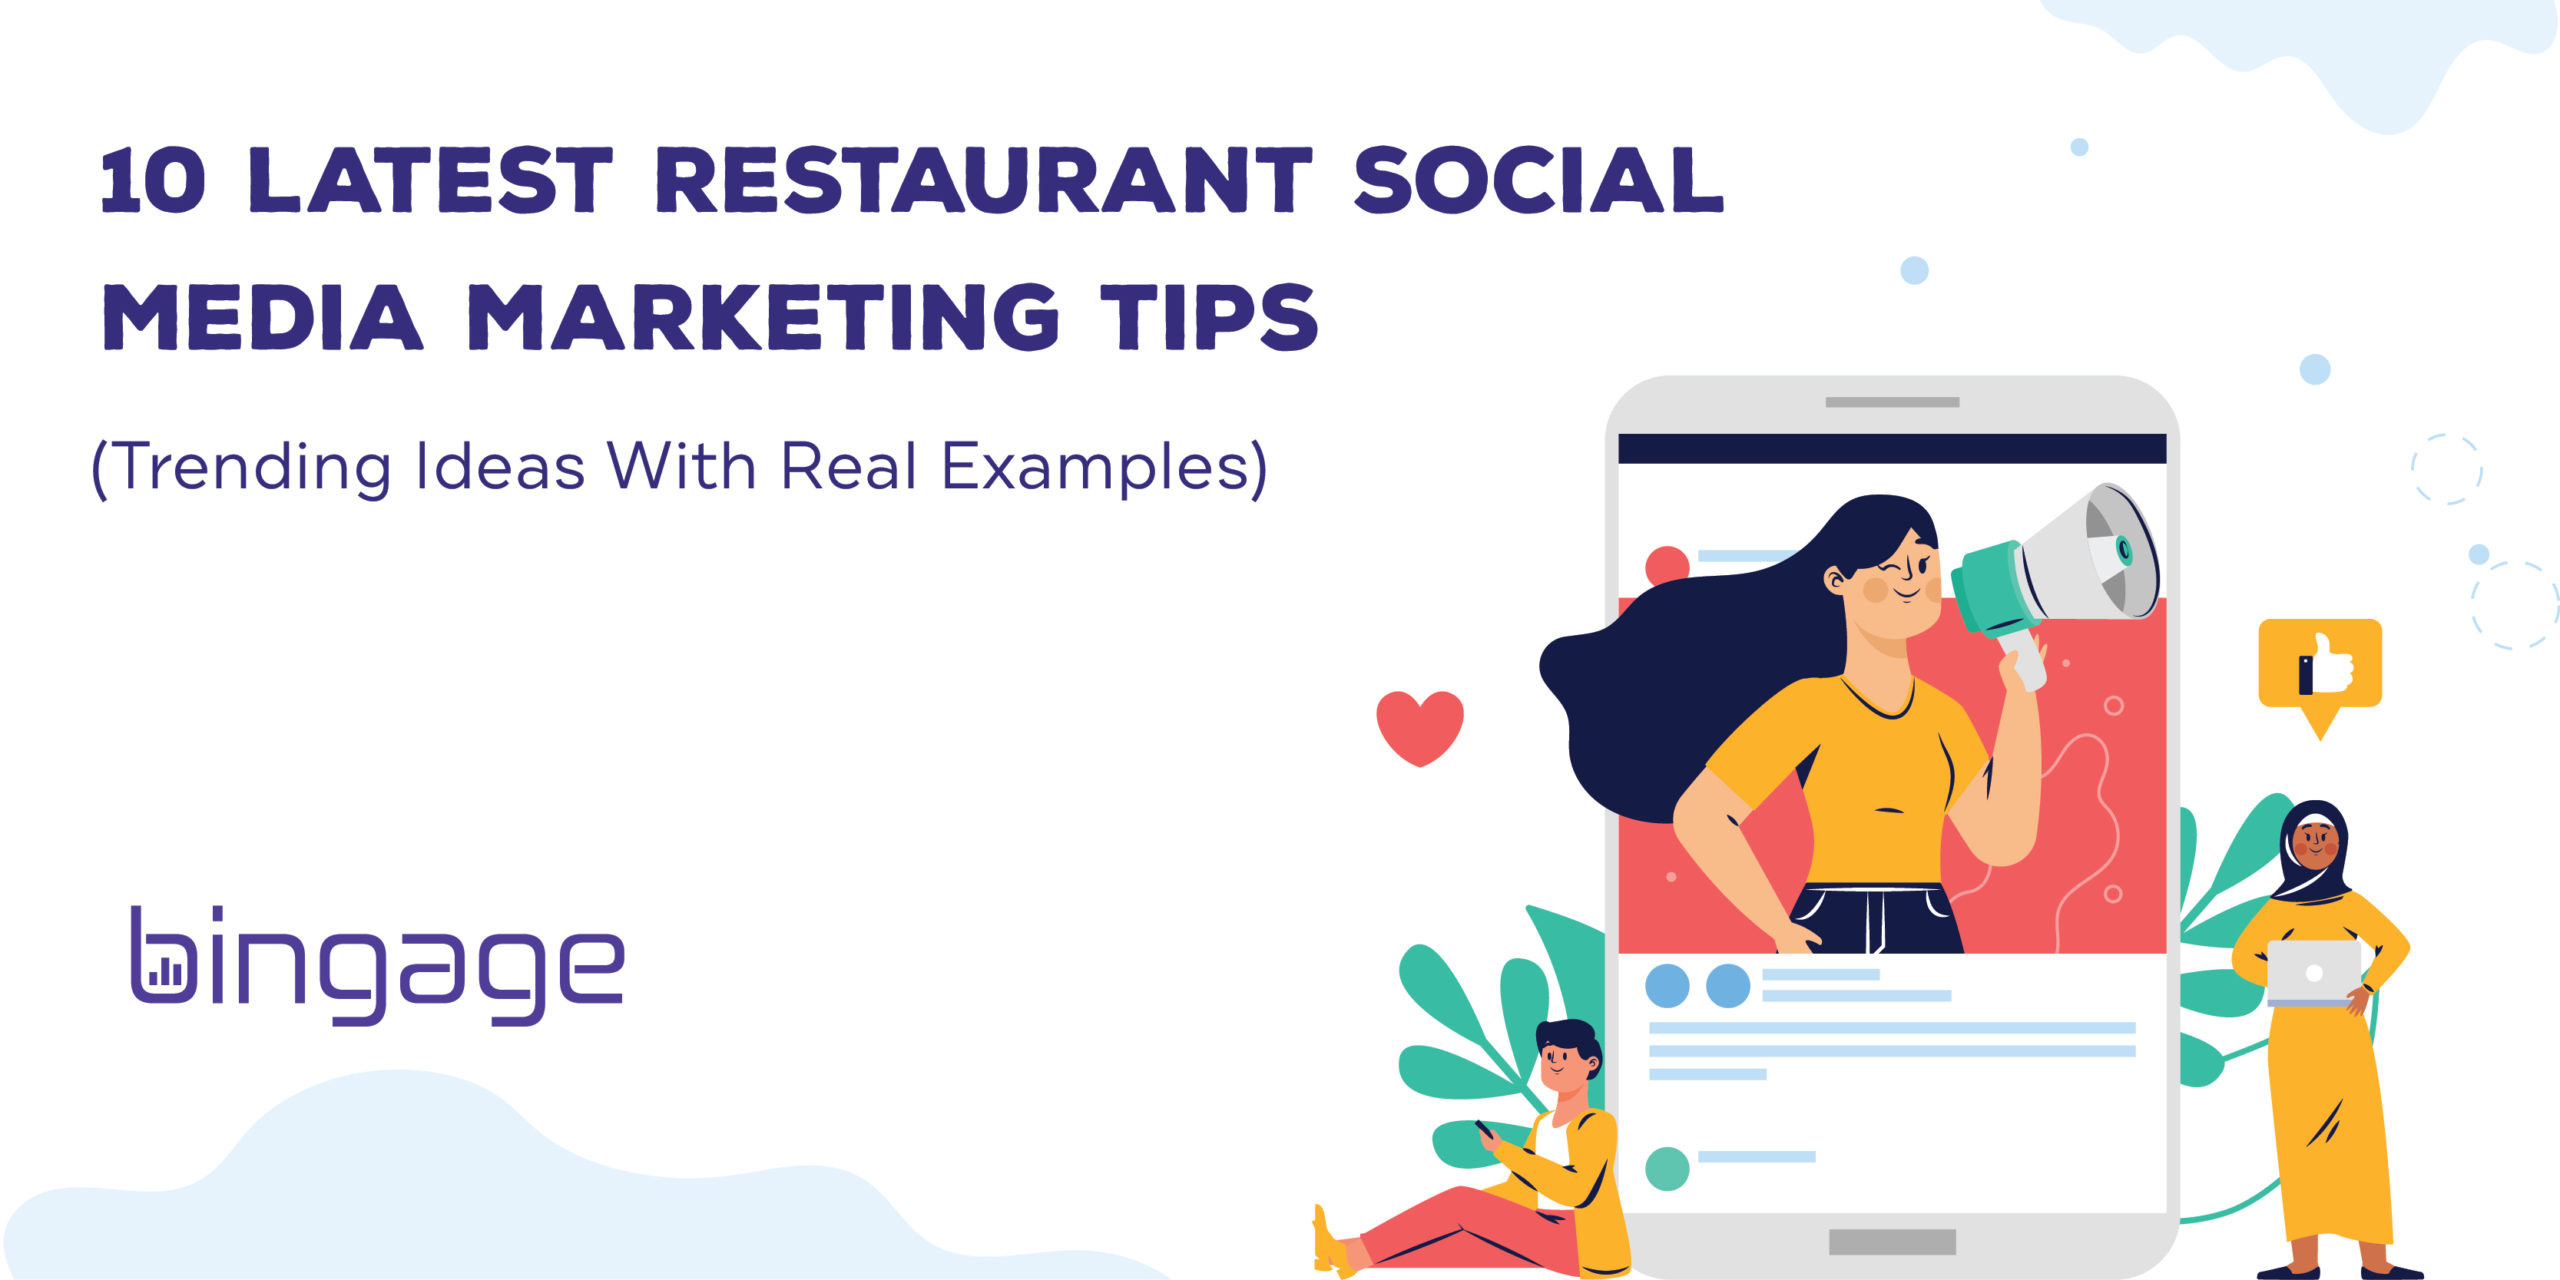 10 Social Media Marketing Tips for Restaurant (Along with Fresh Content Ideas)